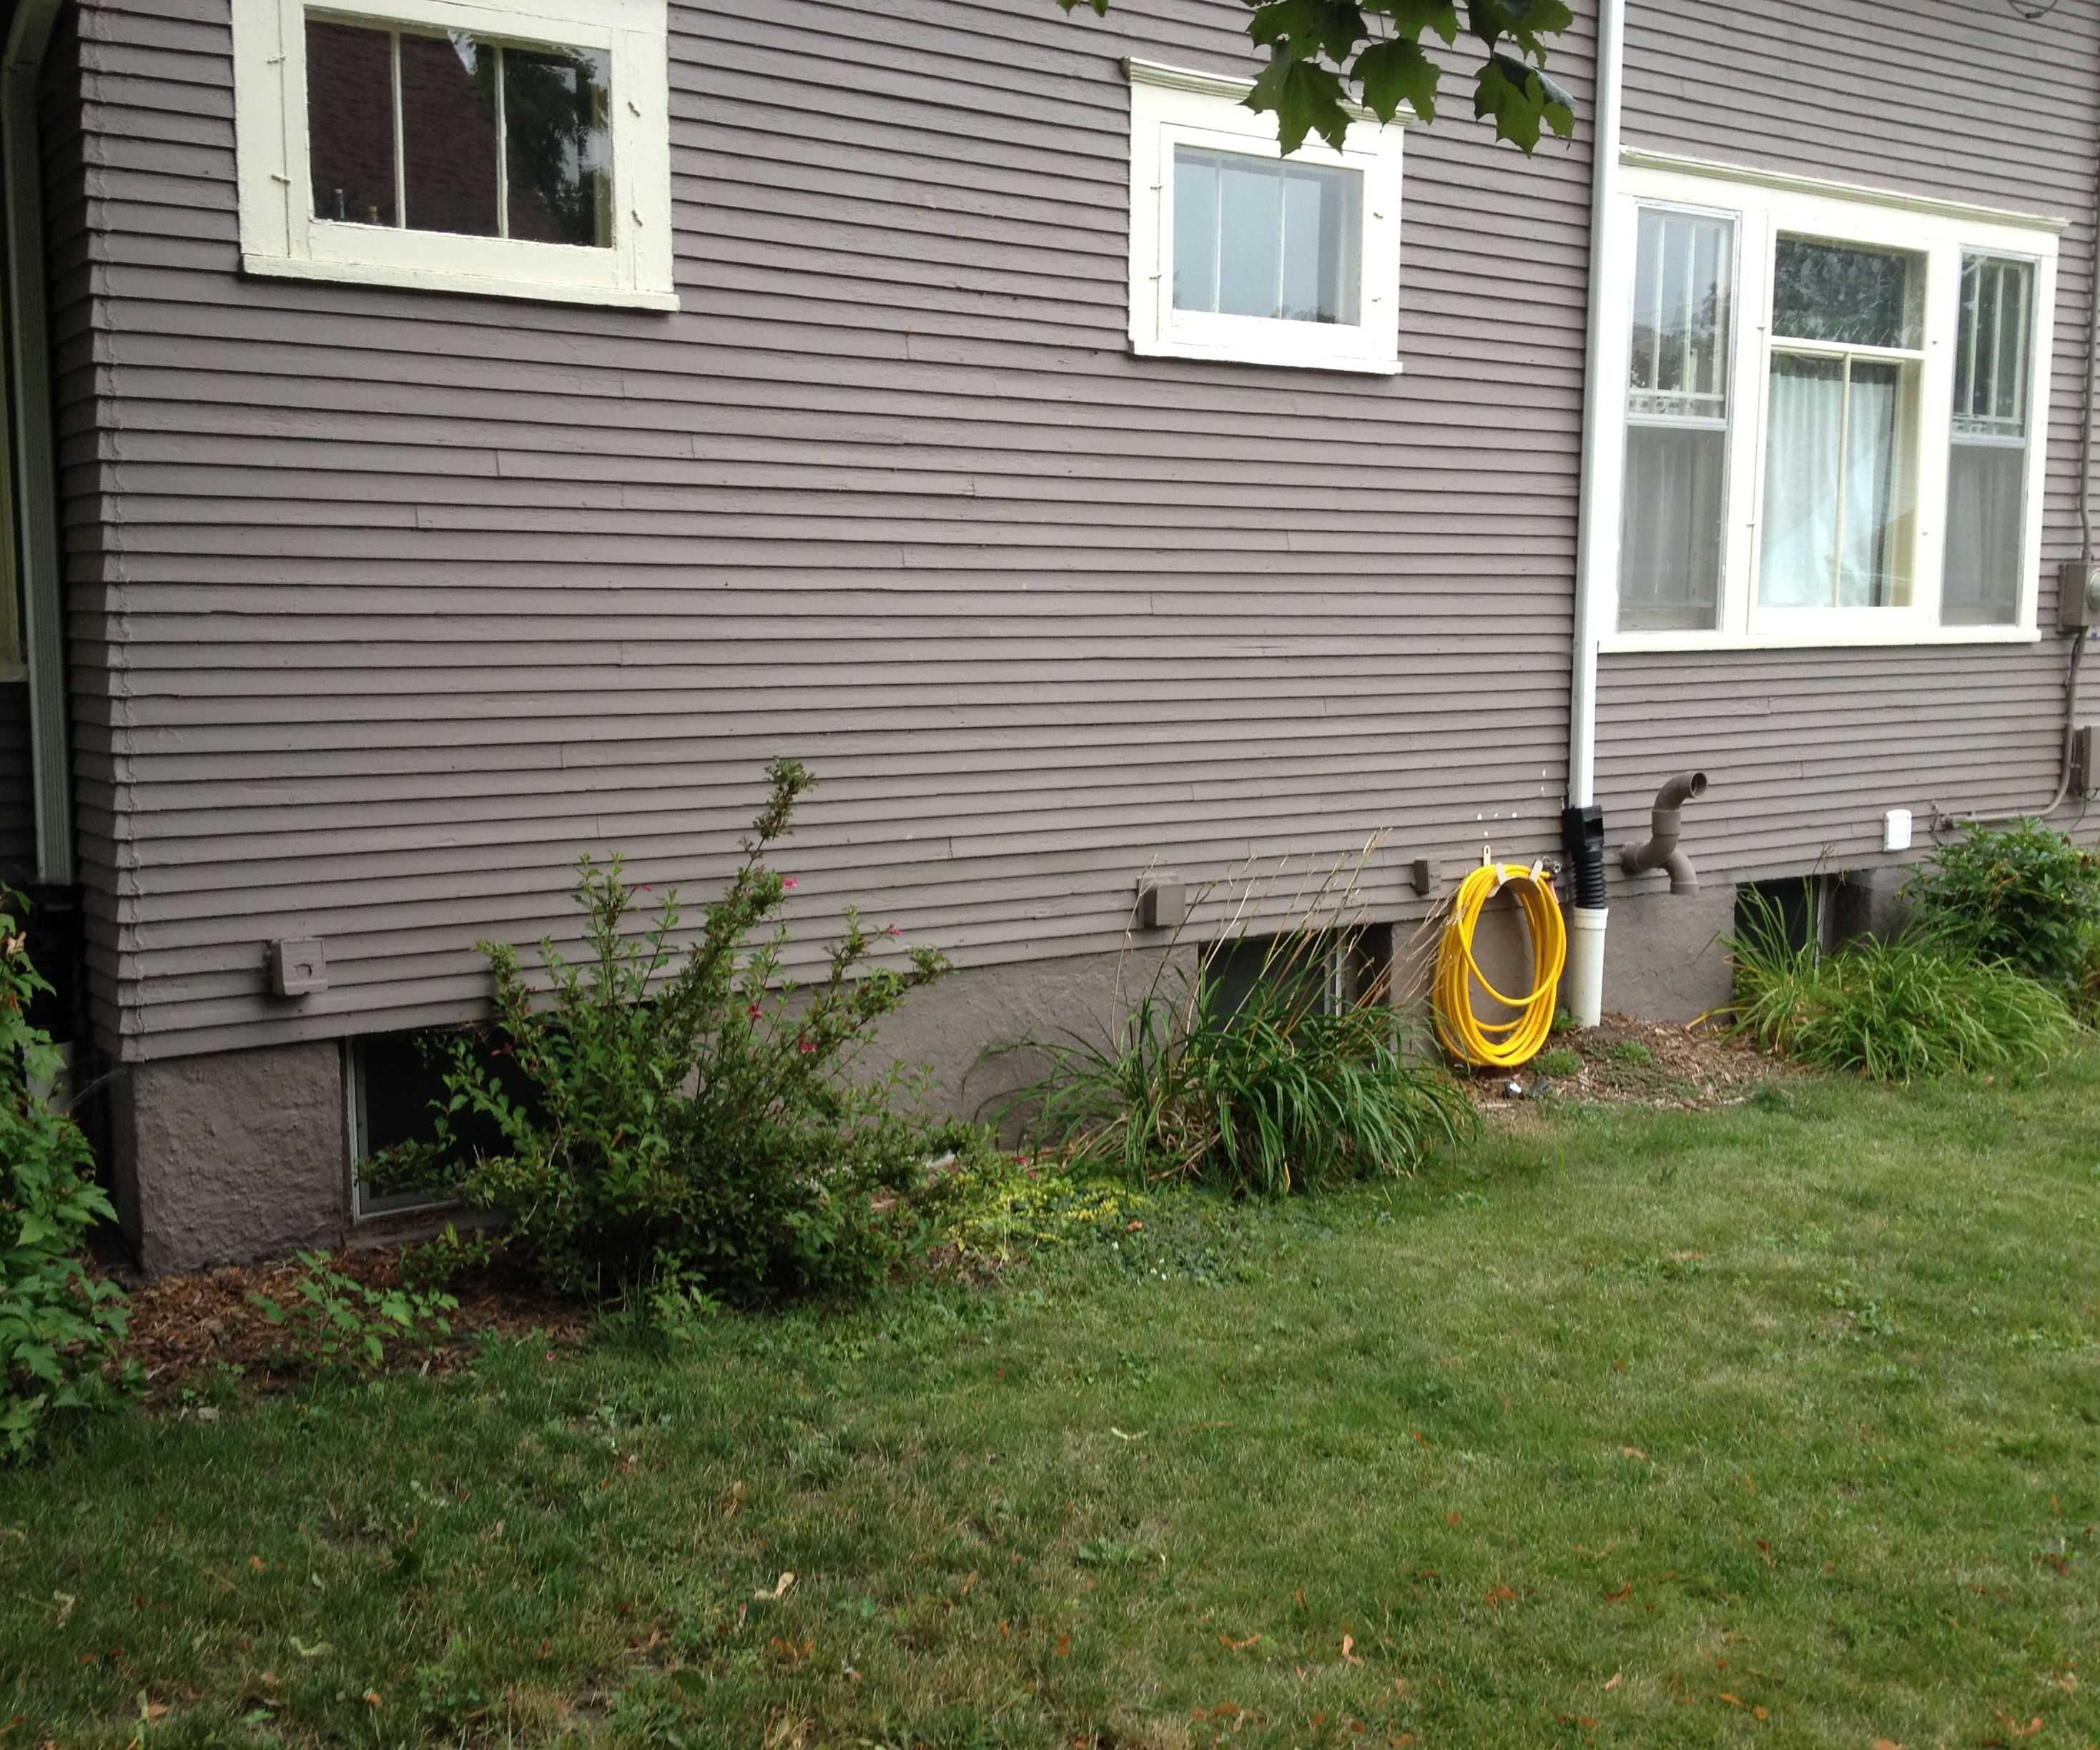 Bury your Gutter Downspouts